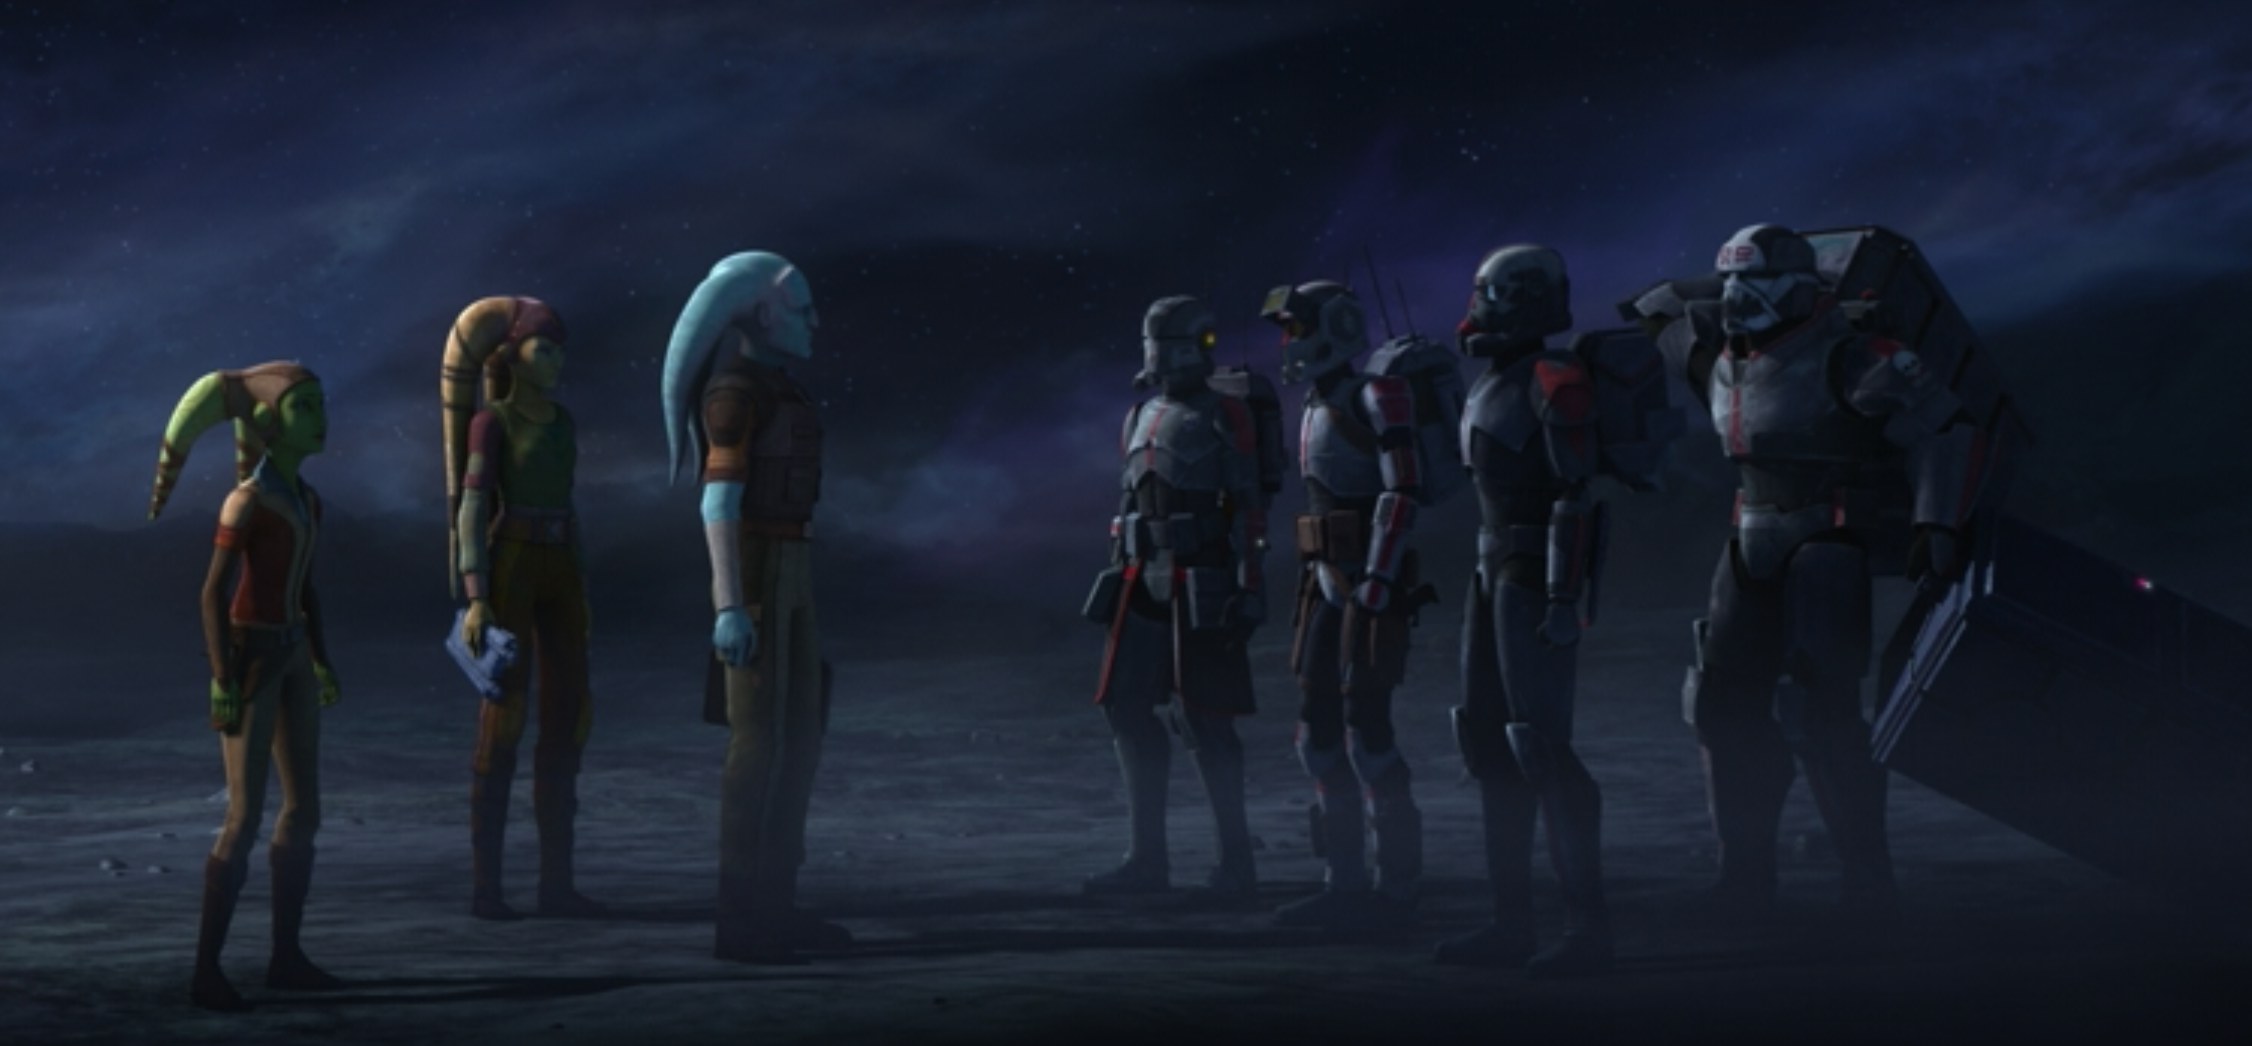 Hera and Cham's soldiers meet the Bad Batch